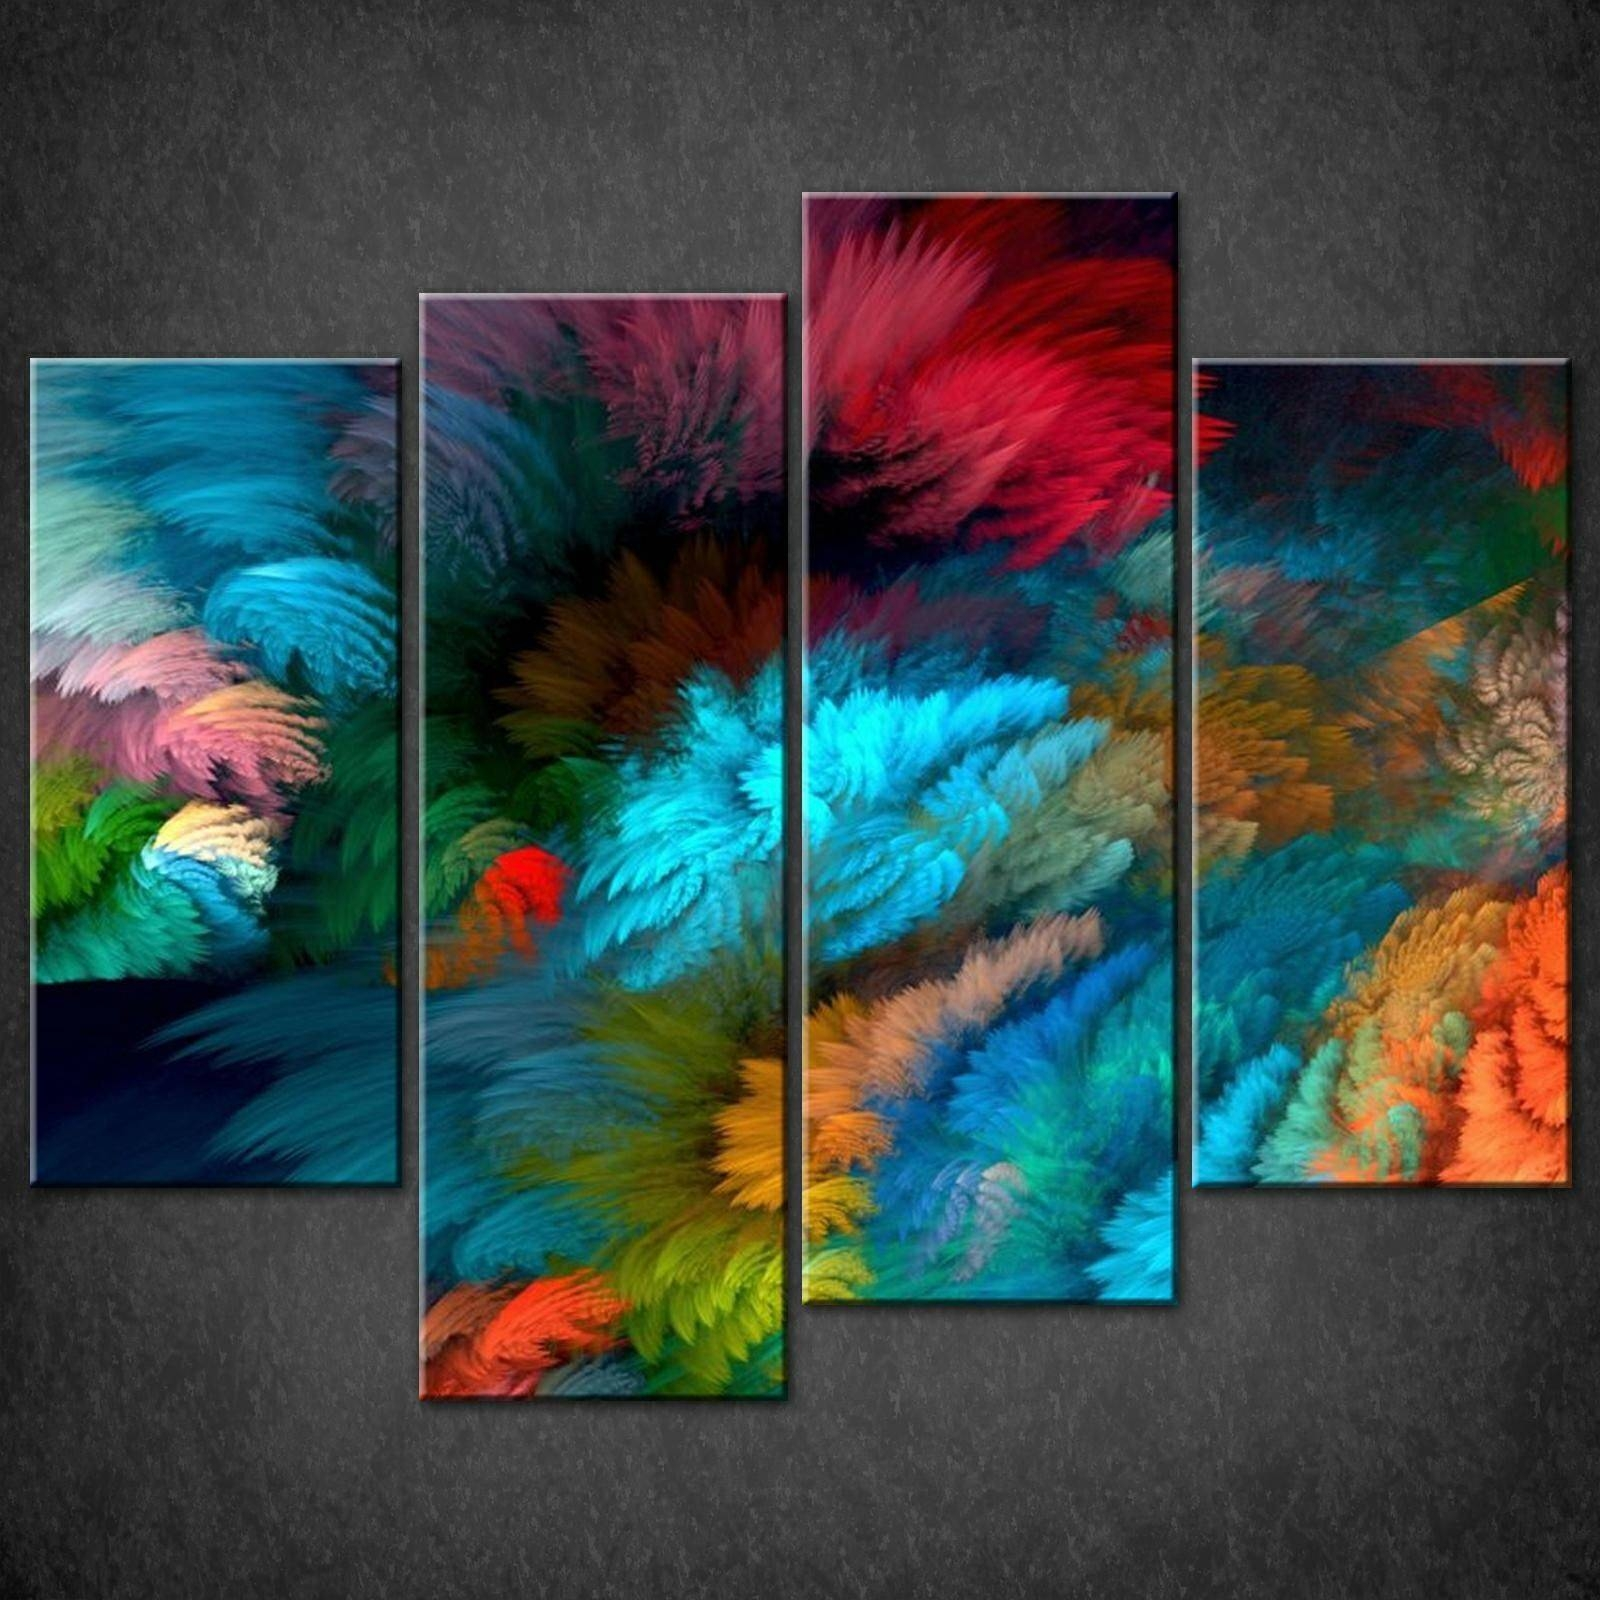 Decor: Large Abstract Colourful Split Canvas Wall Art Pictures Prints Regarding Most Up To Date Split Wall Art (View 5 of 20)